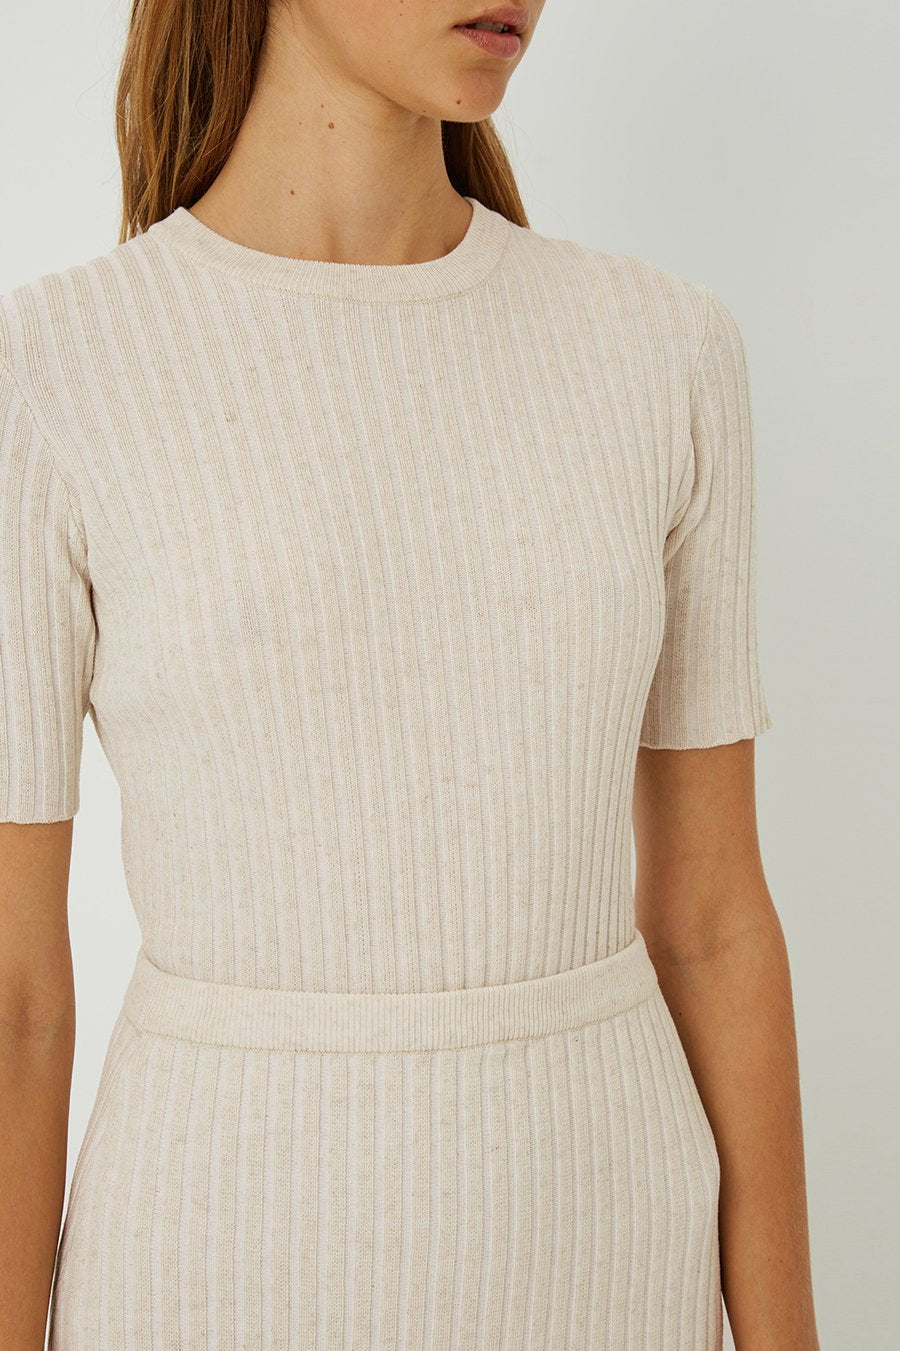 FRIEND OF AUDREY | Carolina Basic Knit